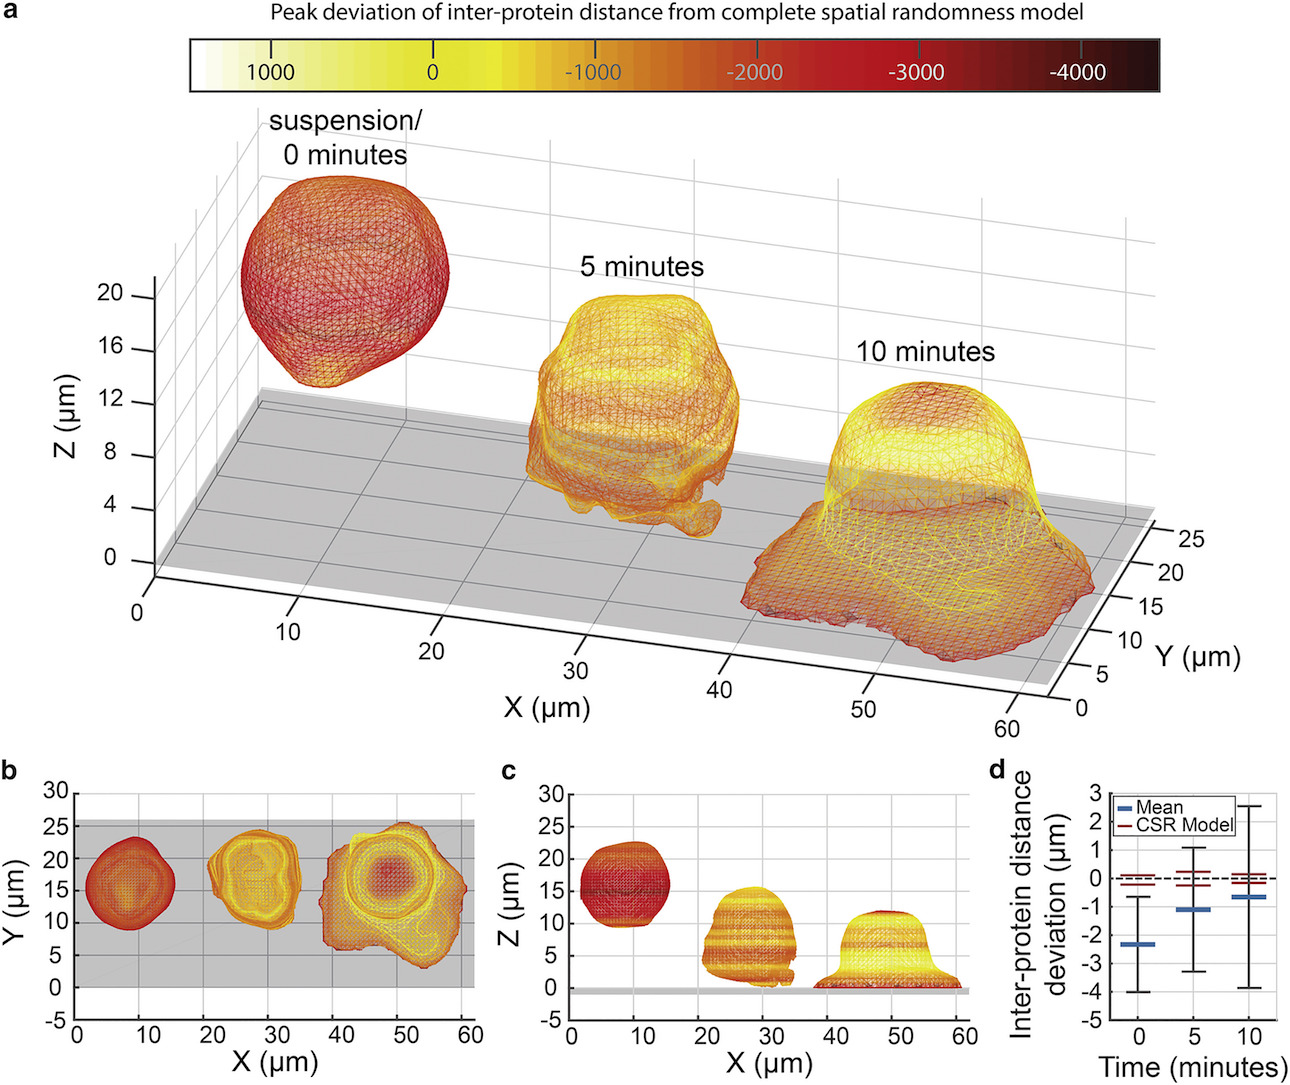 isualization of large-scale reorganization of the outer membrane of Jurkat T cells on activating coated surfaces by mesh fitting to 3D localization data